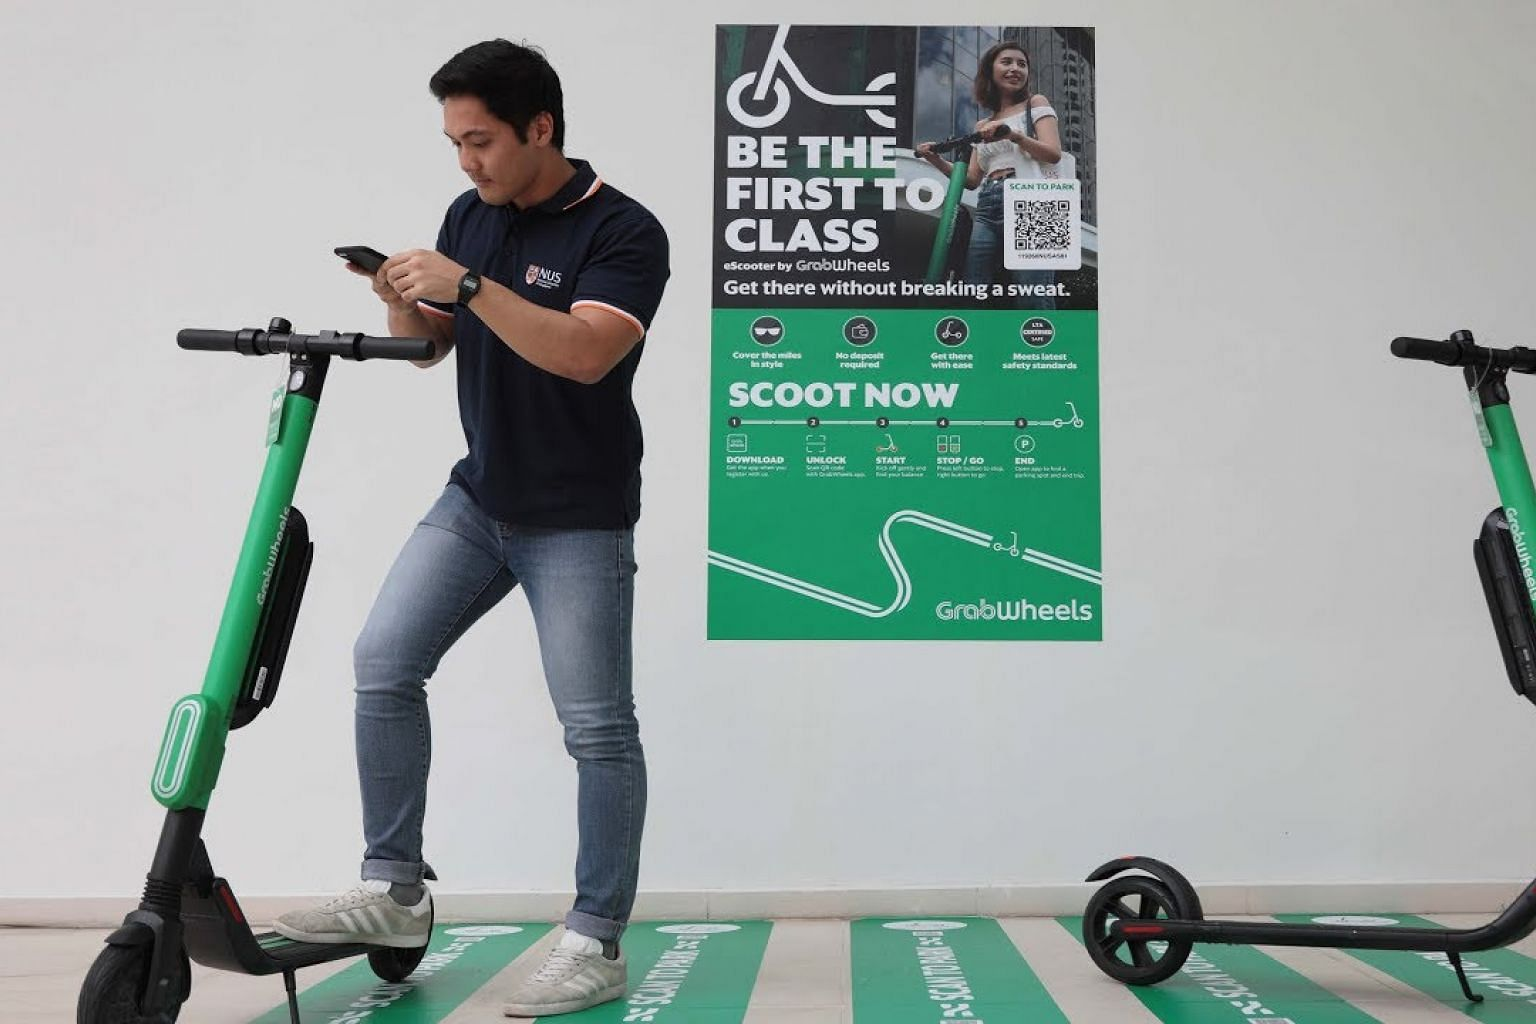 Grab partners NUS to pilot new electric scooter sharing service on campus